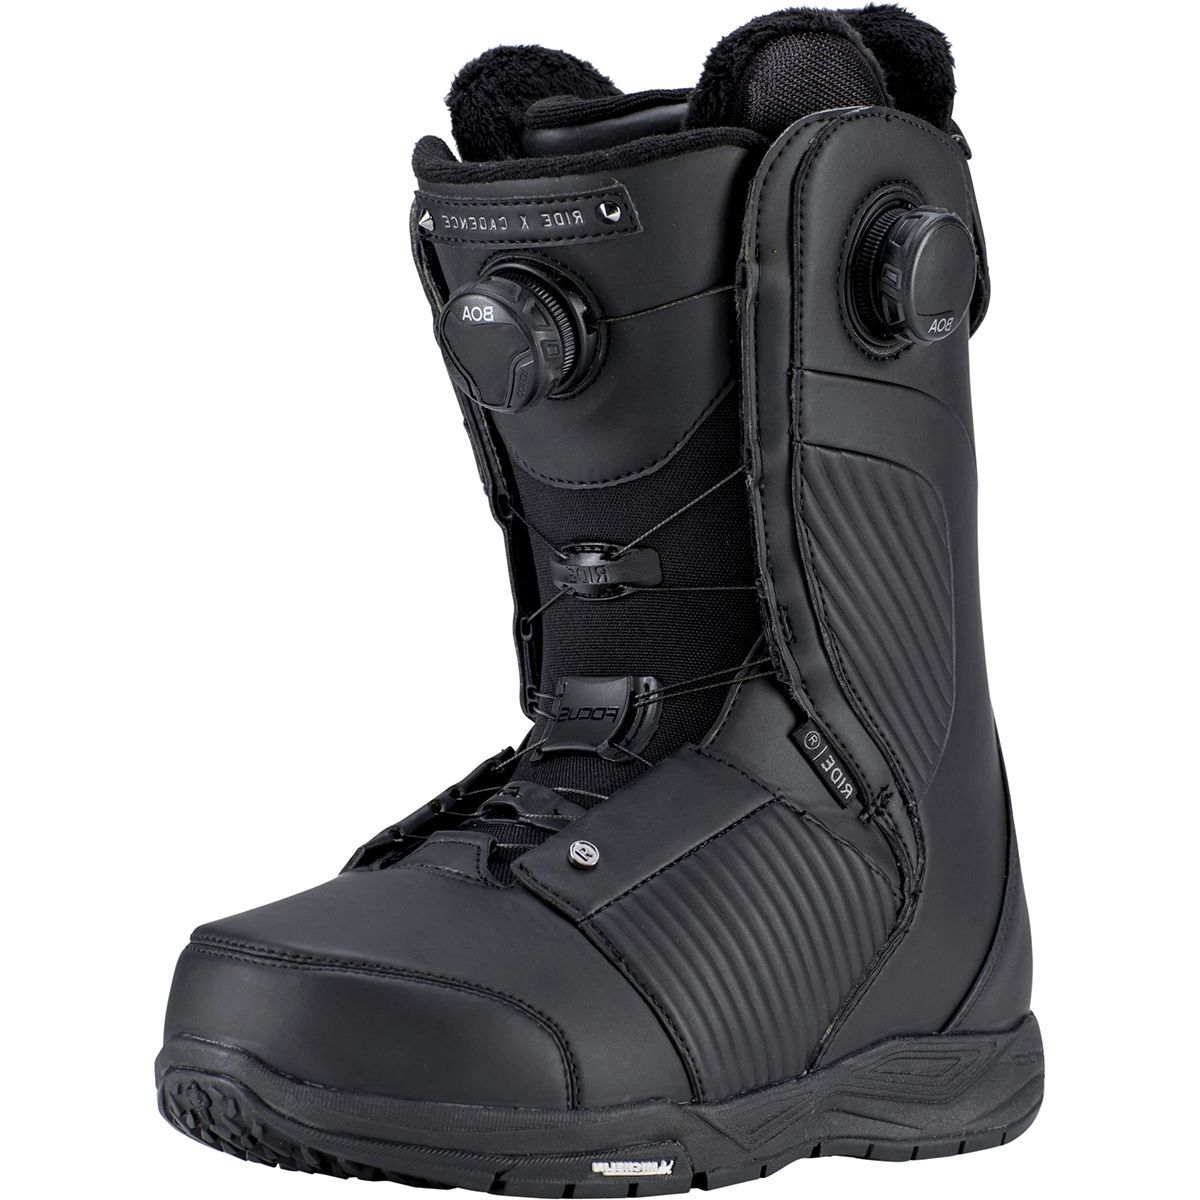 Ride Cadence Focus Boa Snowboard Boot - Women's